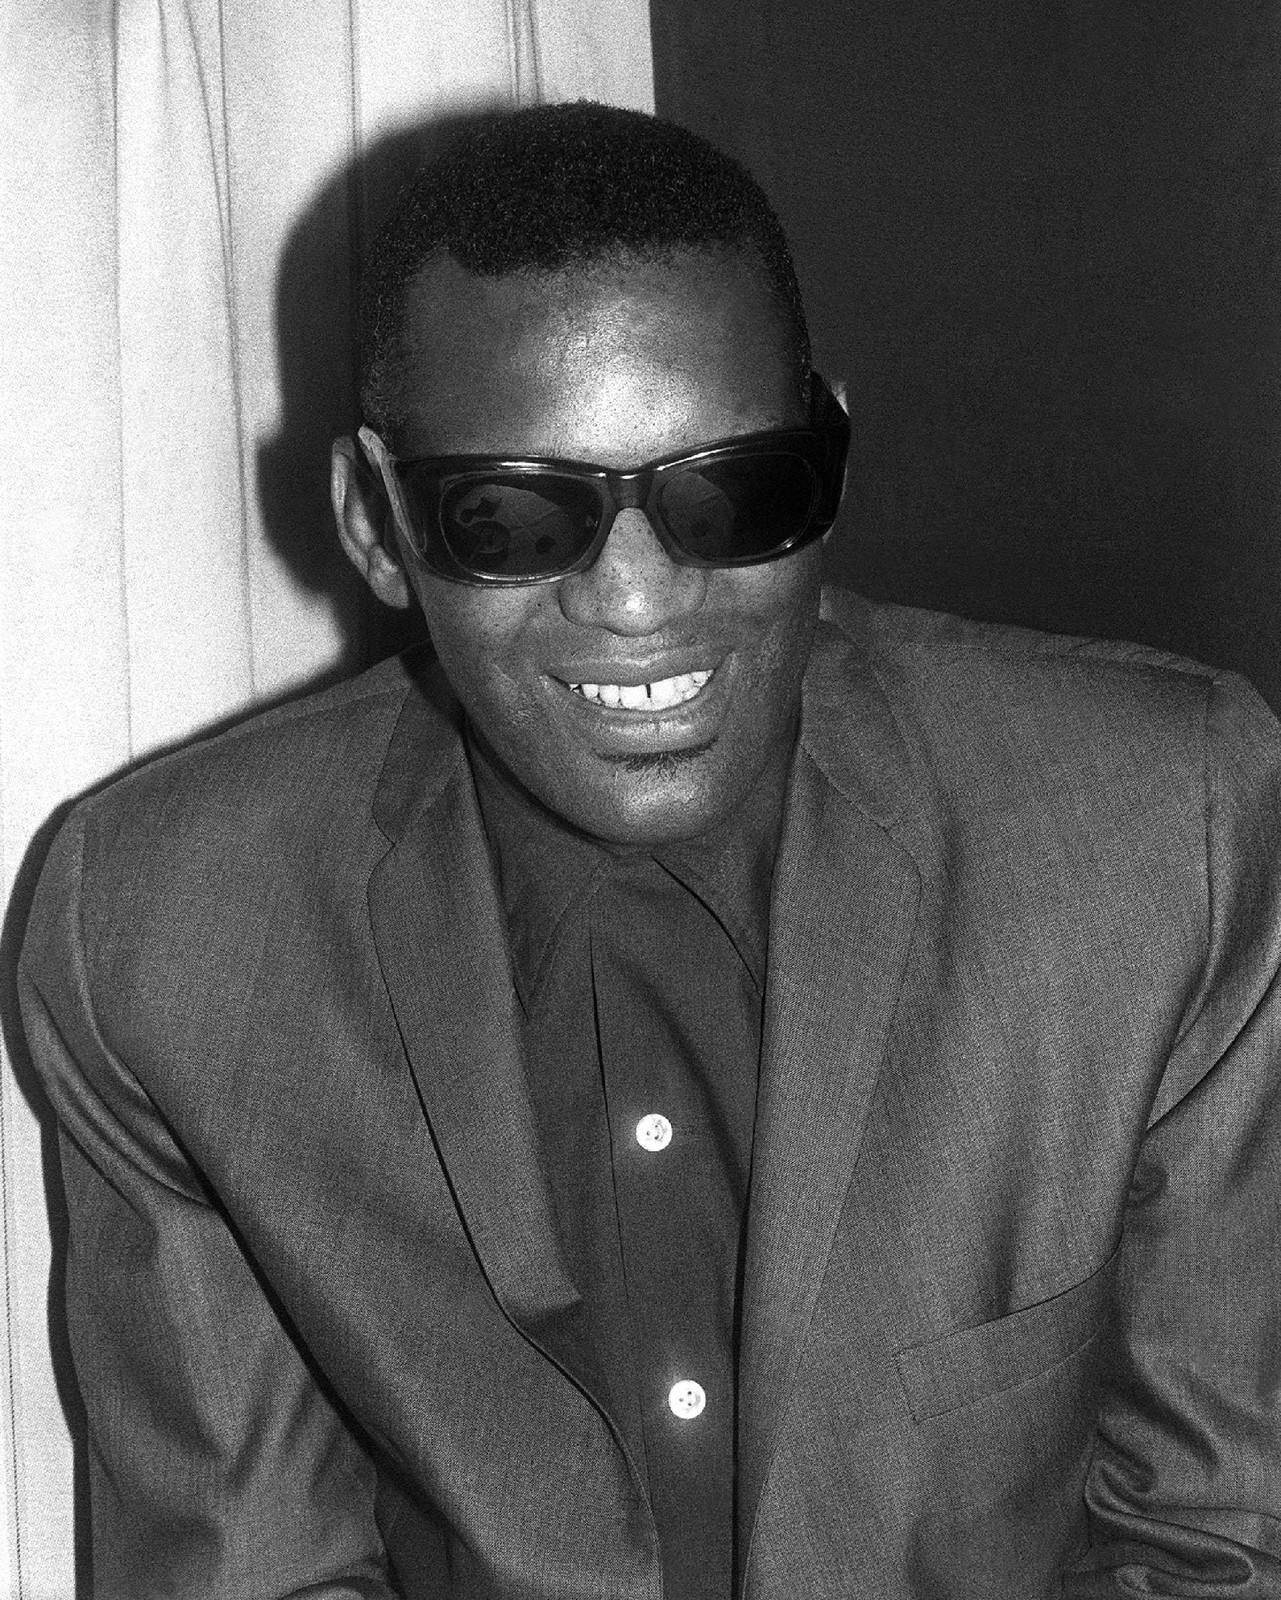 Concert -Olympia, Paris, backstage, portrait, Ray Charles - 1962.JPG